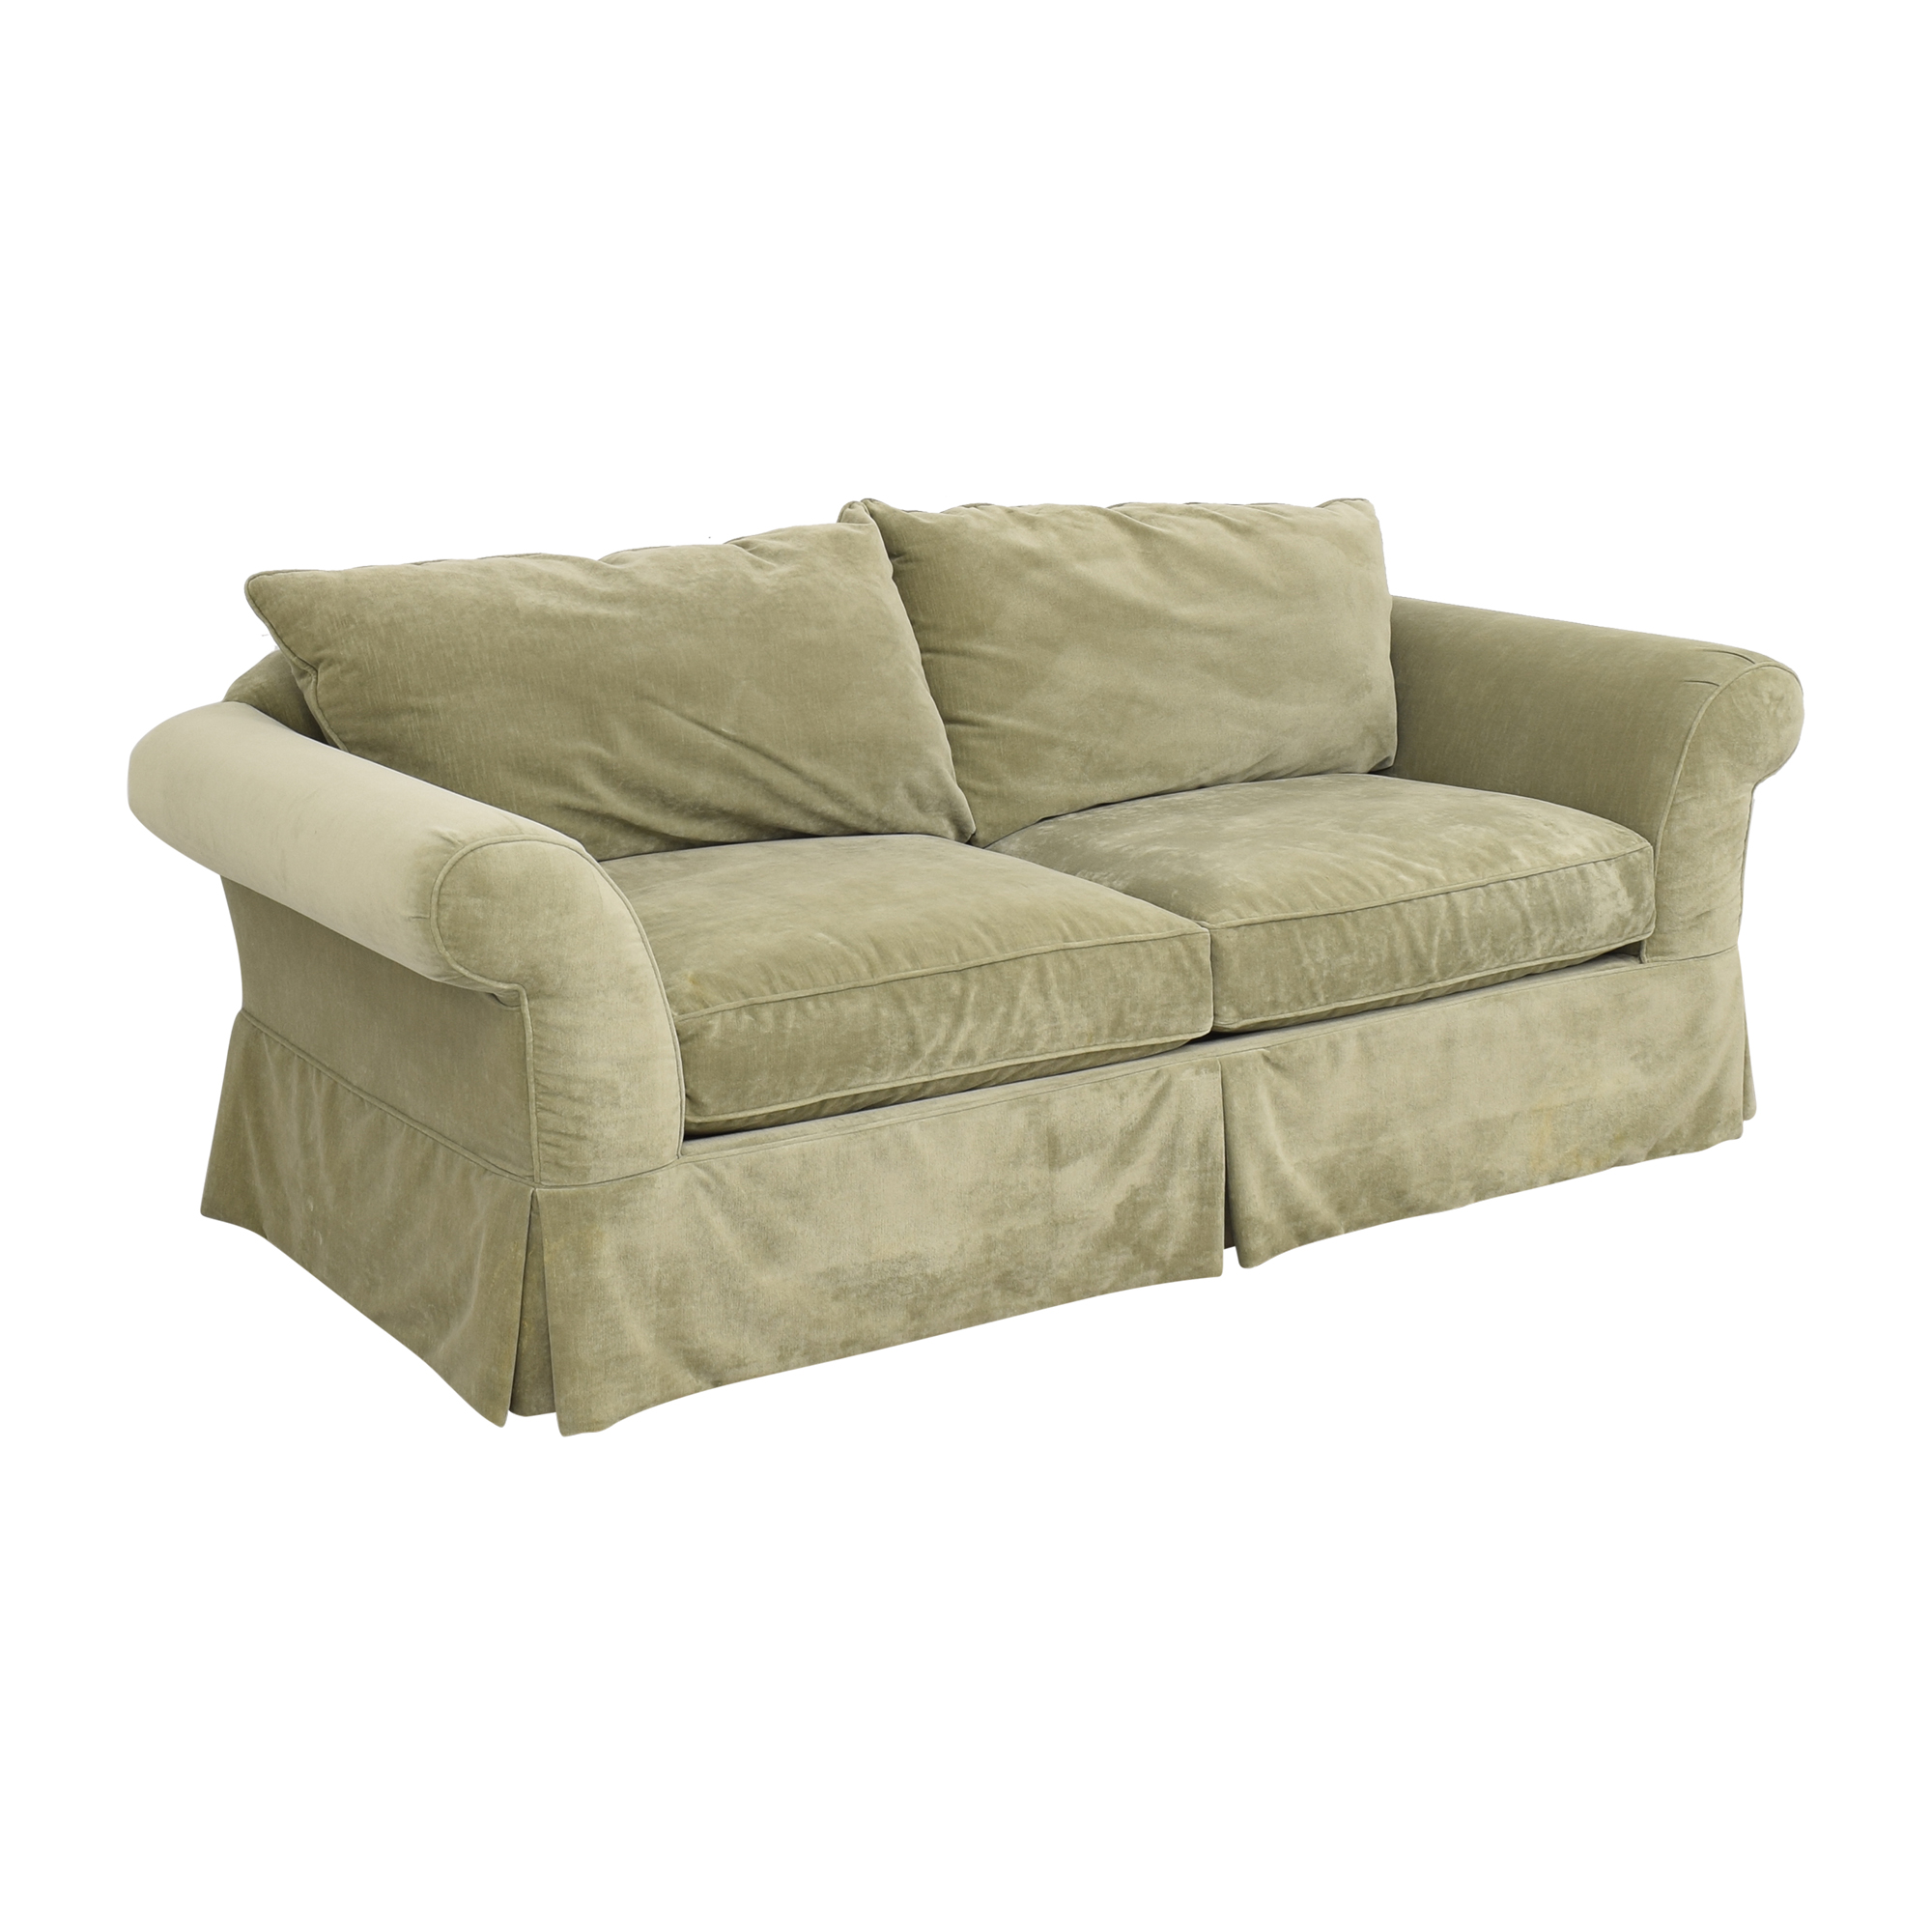 Domain Domain Skirted Sofa on sale